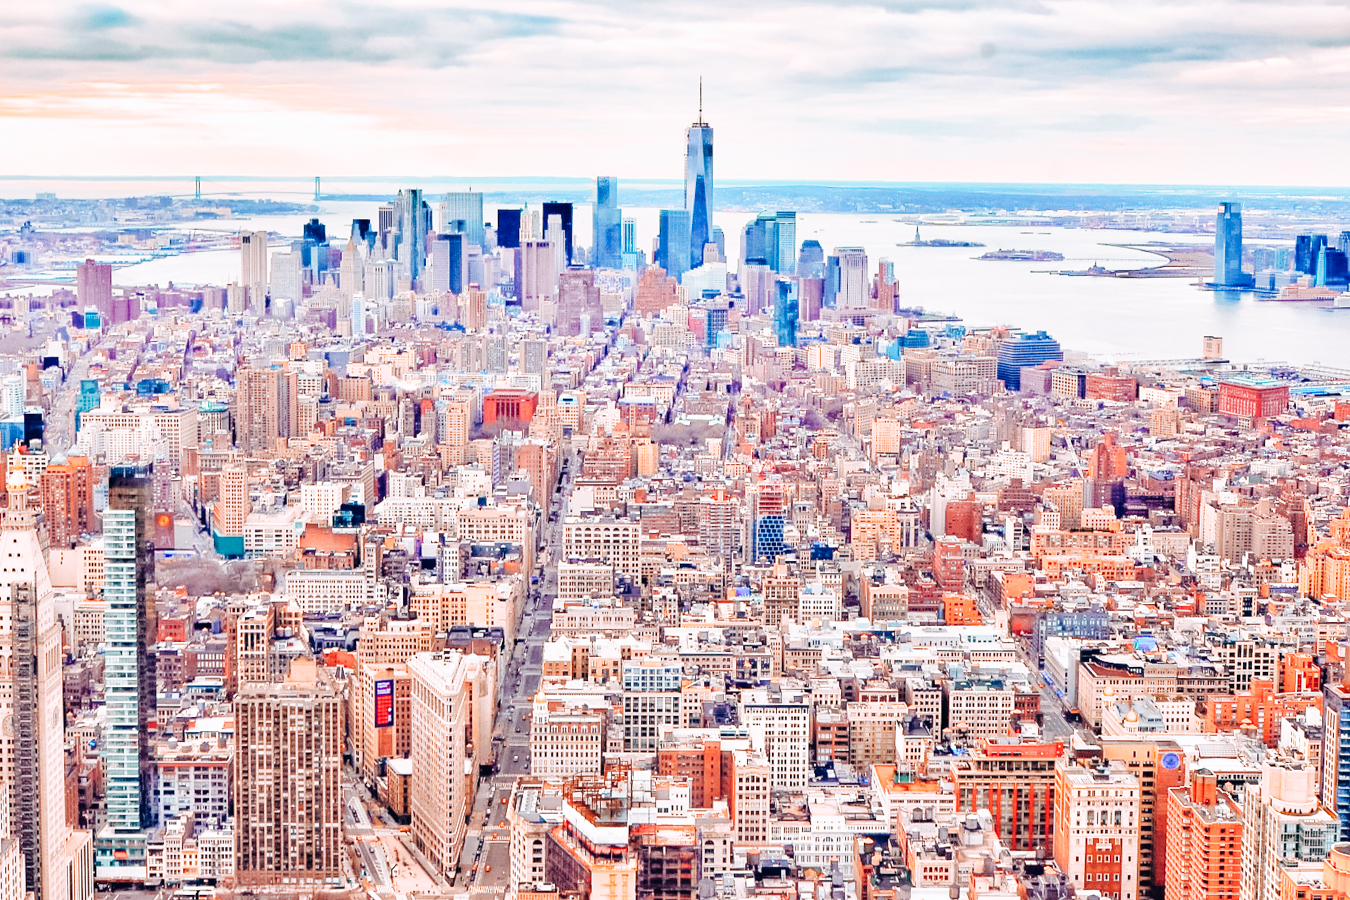 A view of New York City from above